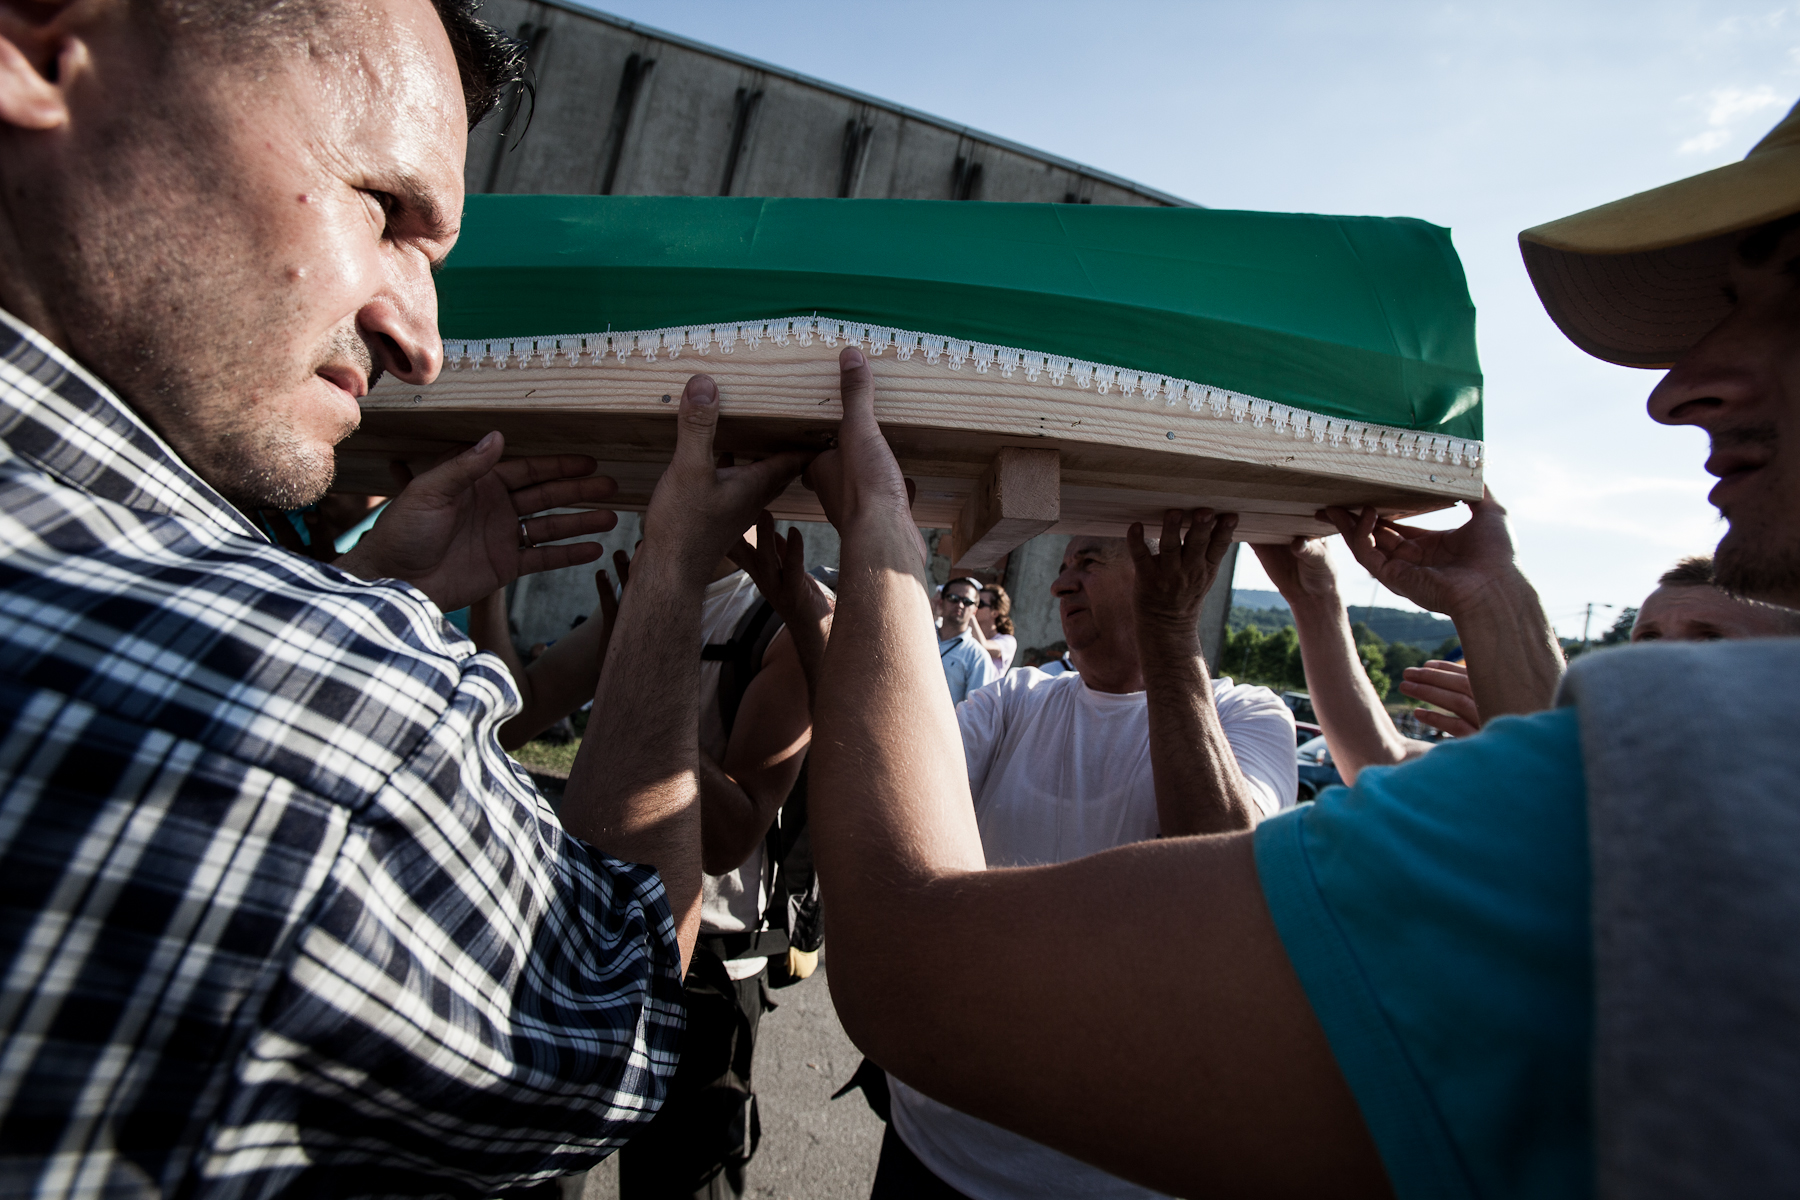 Coffins are carried from the hall to the Potocari cemetery where they will wait to be buried the next day.